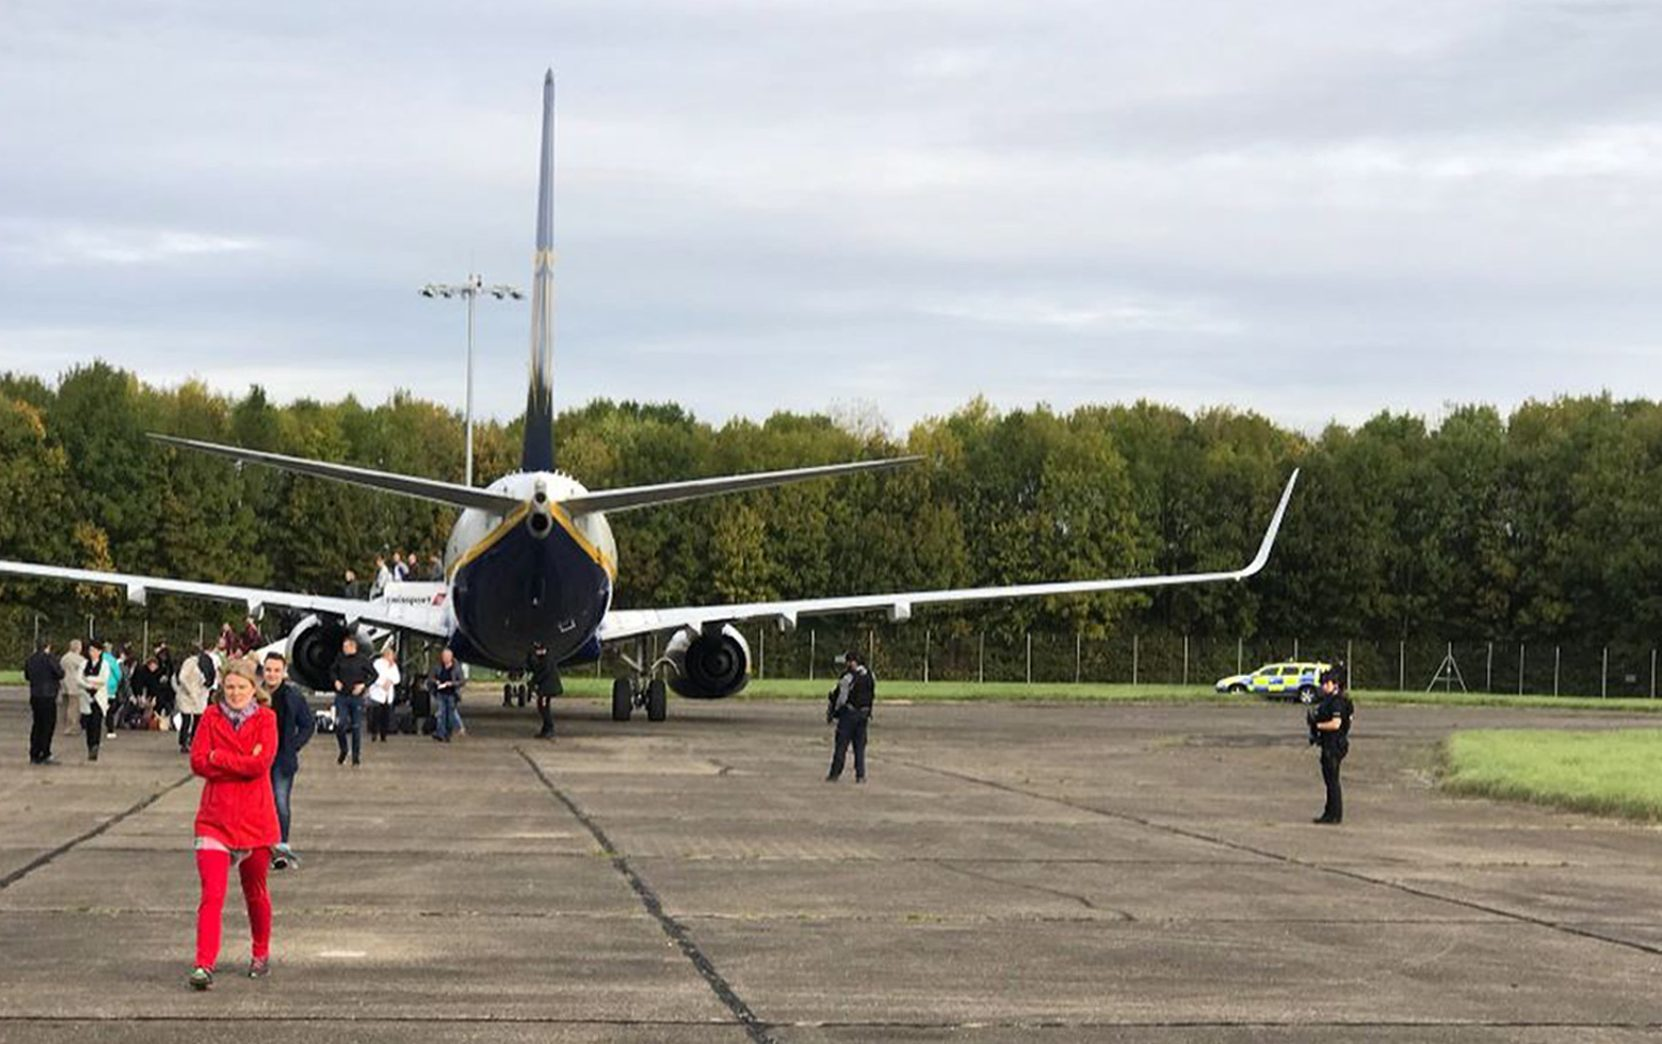 The Ryanair jet on the tarmac at Stansted (Twitter @zulu_wooloo/PA Wire)